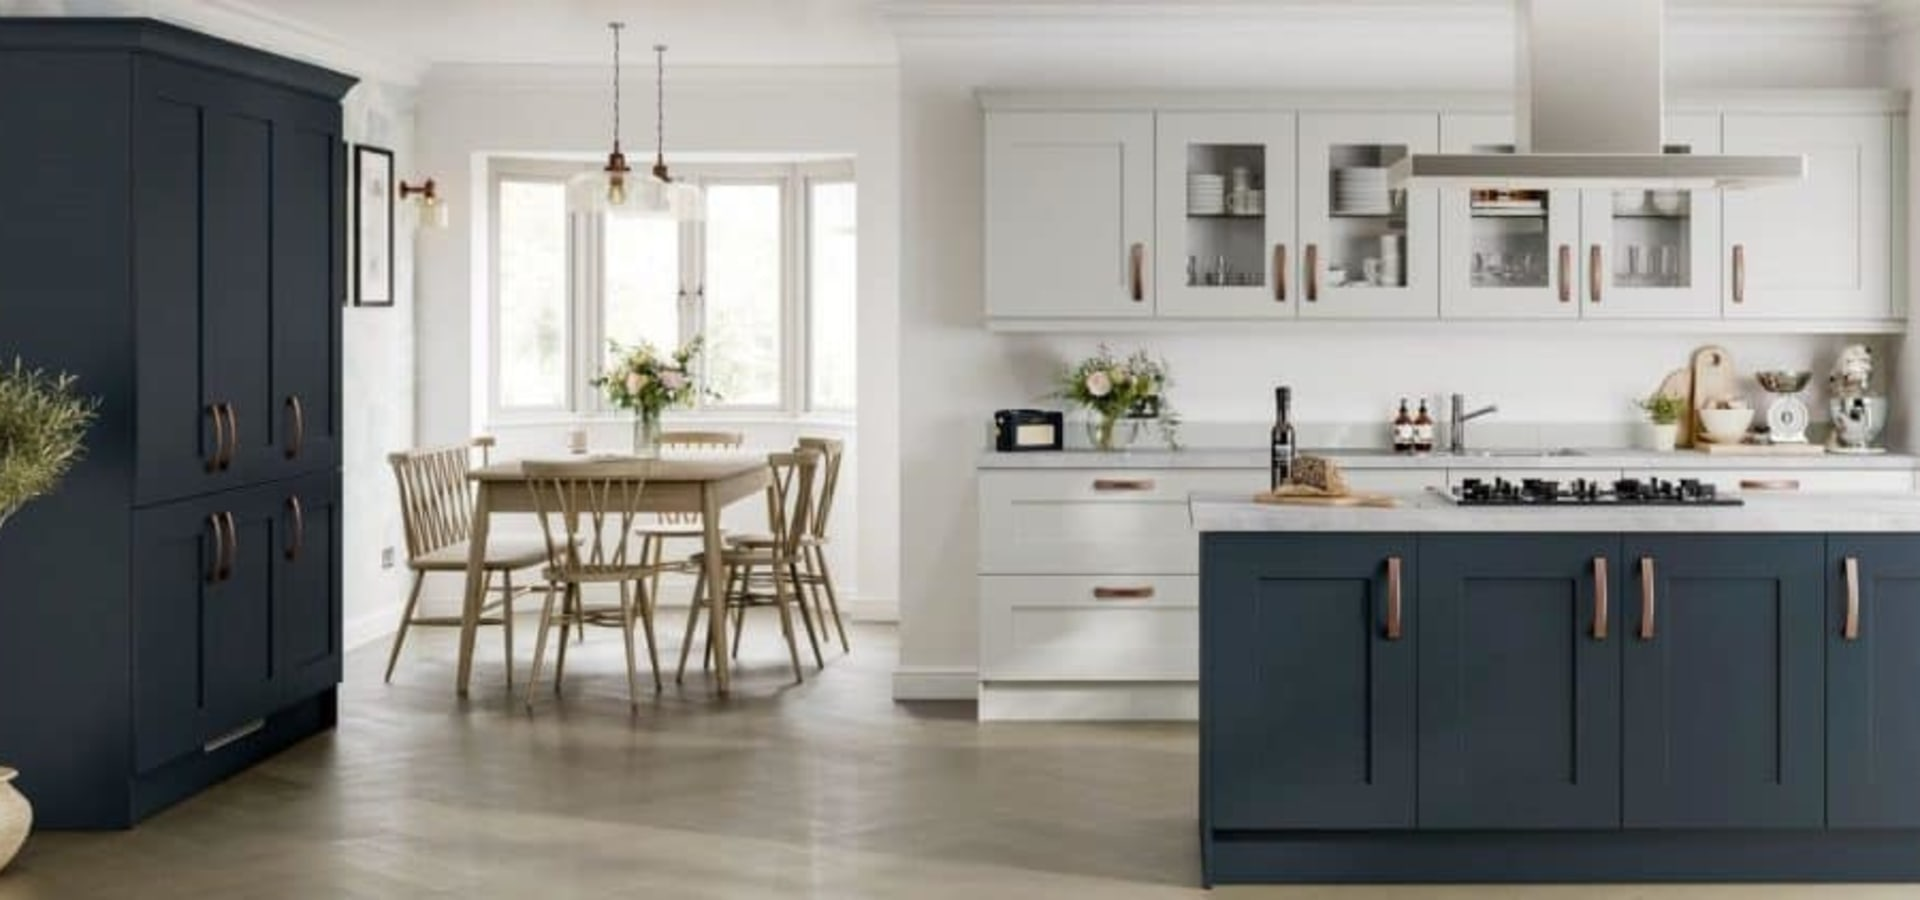 Kellyvision Kitchens and Bedrooms